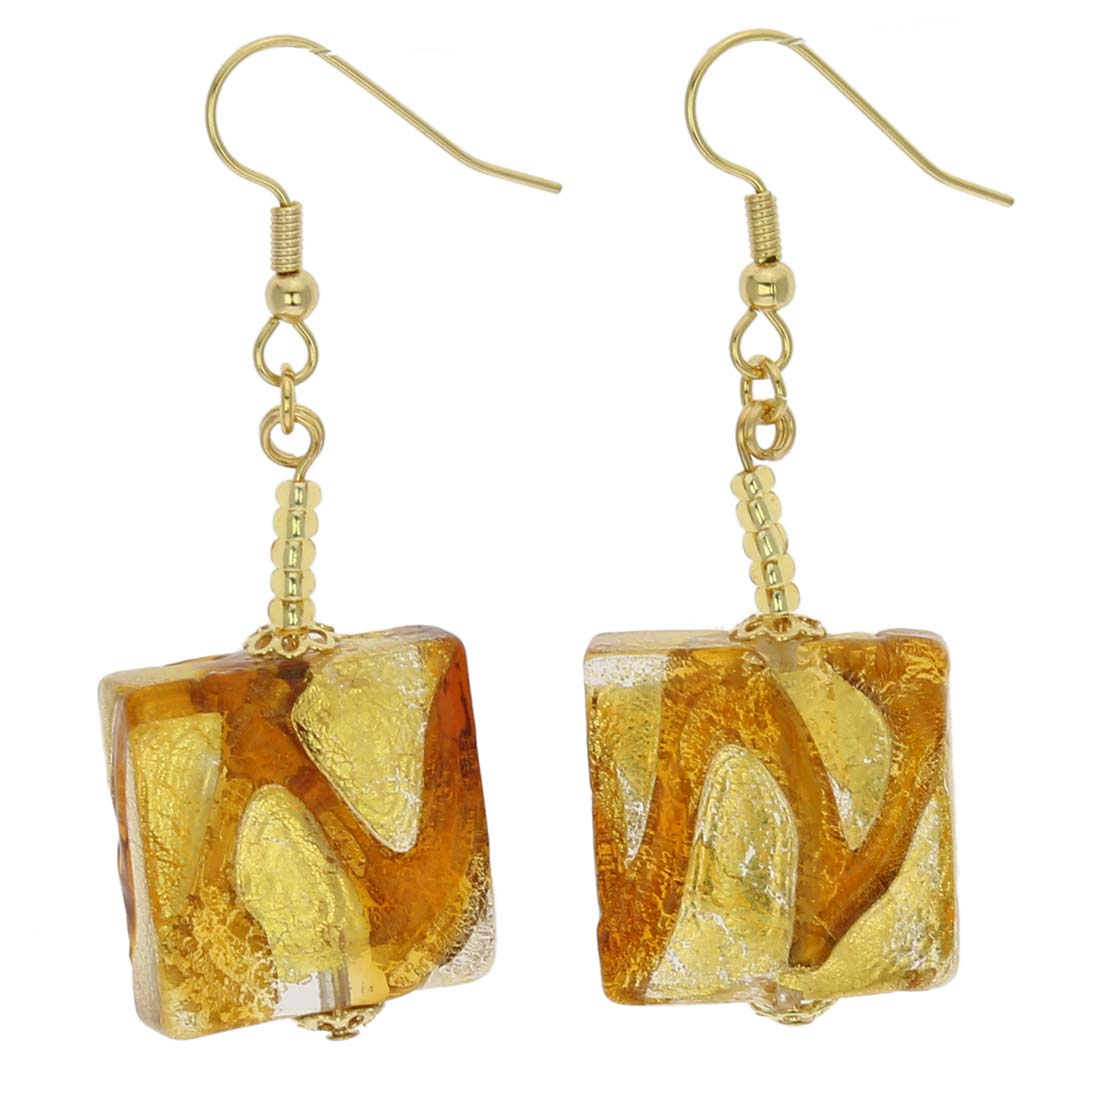 Royal Cognac Squares earrings